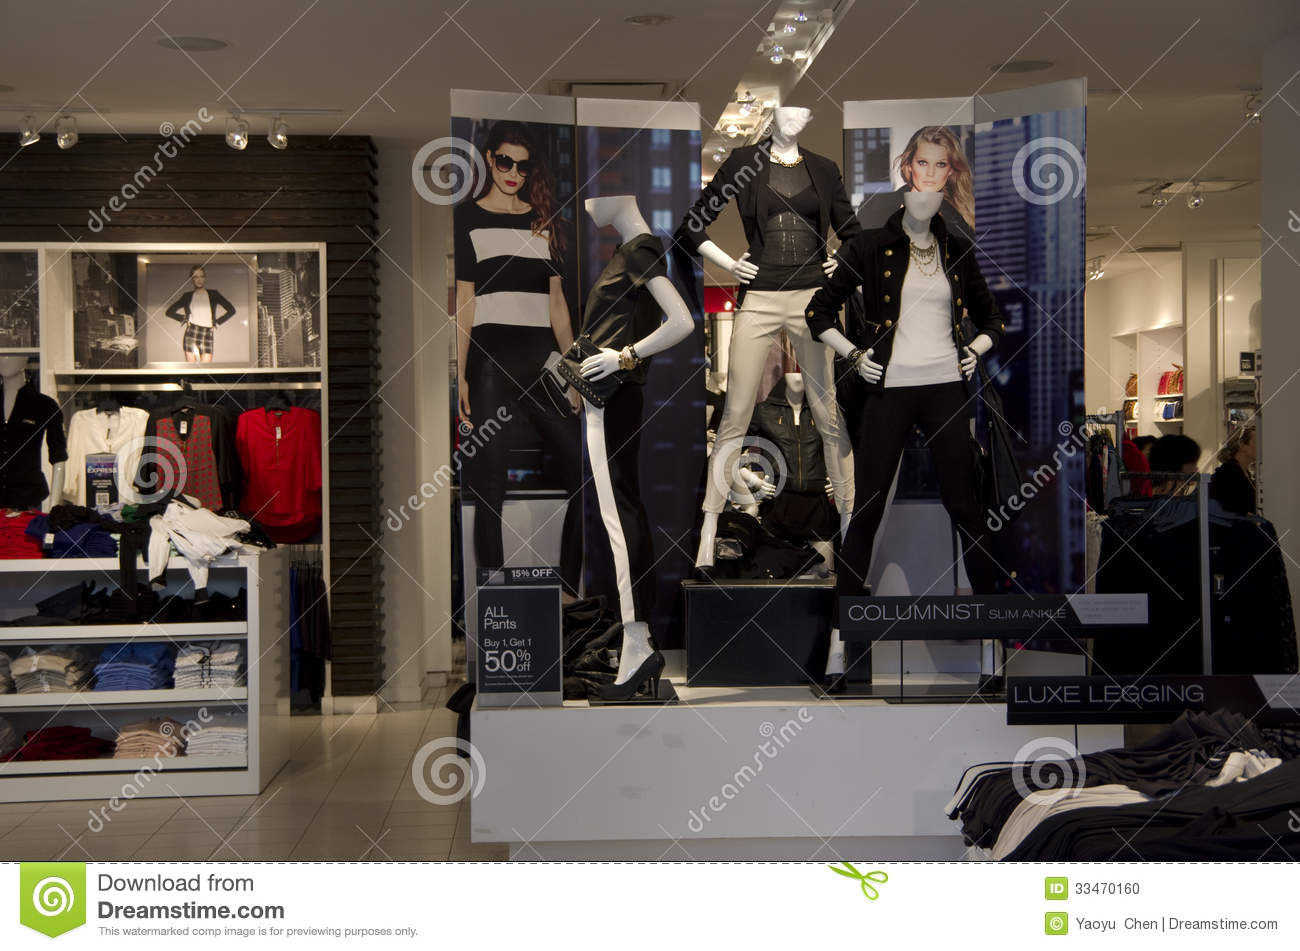 Express Clothing Store Editorial Stock Photo - Image: 33470193